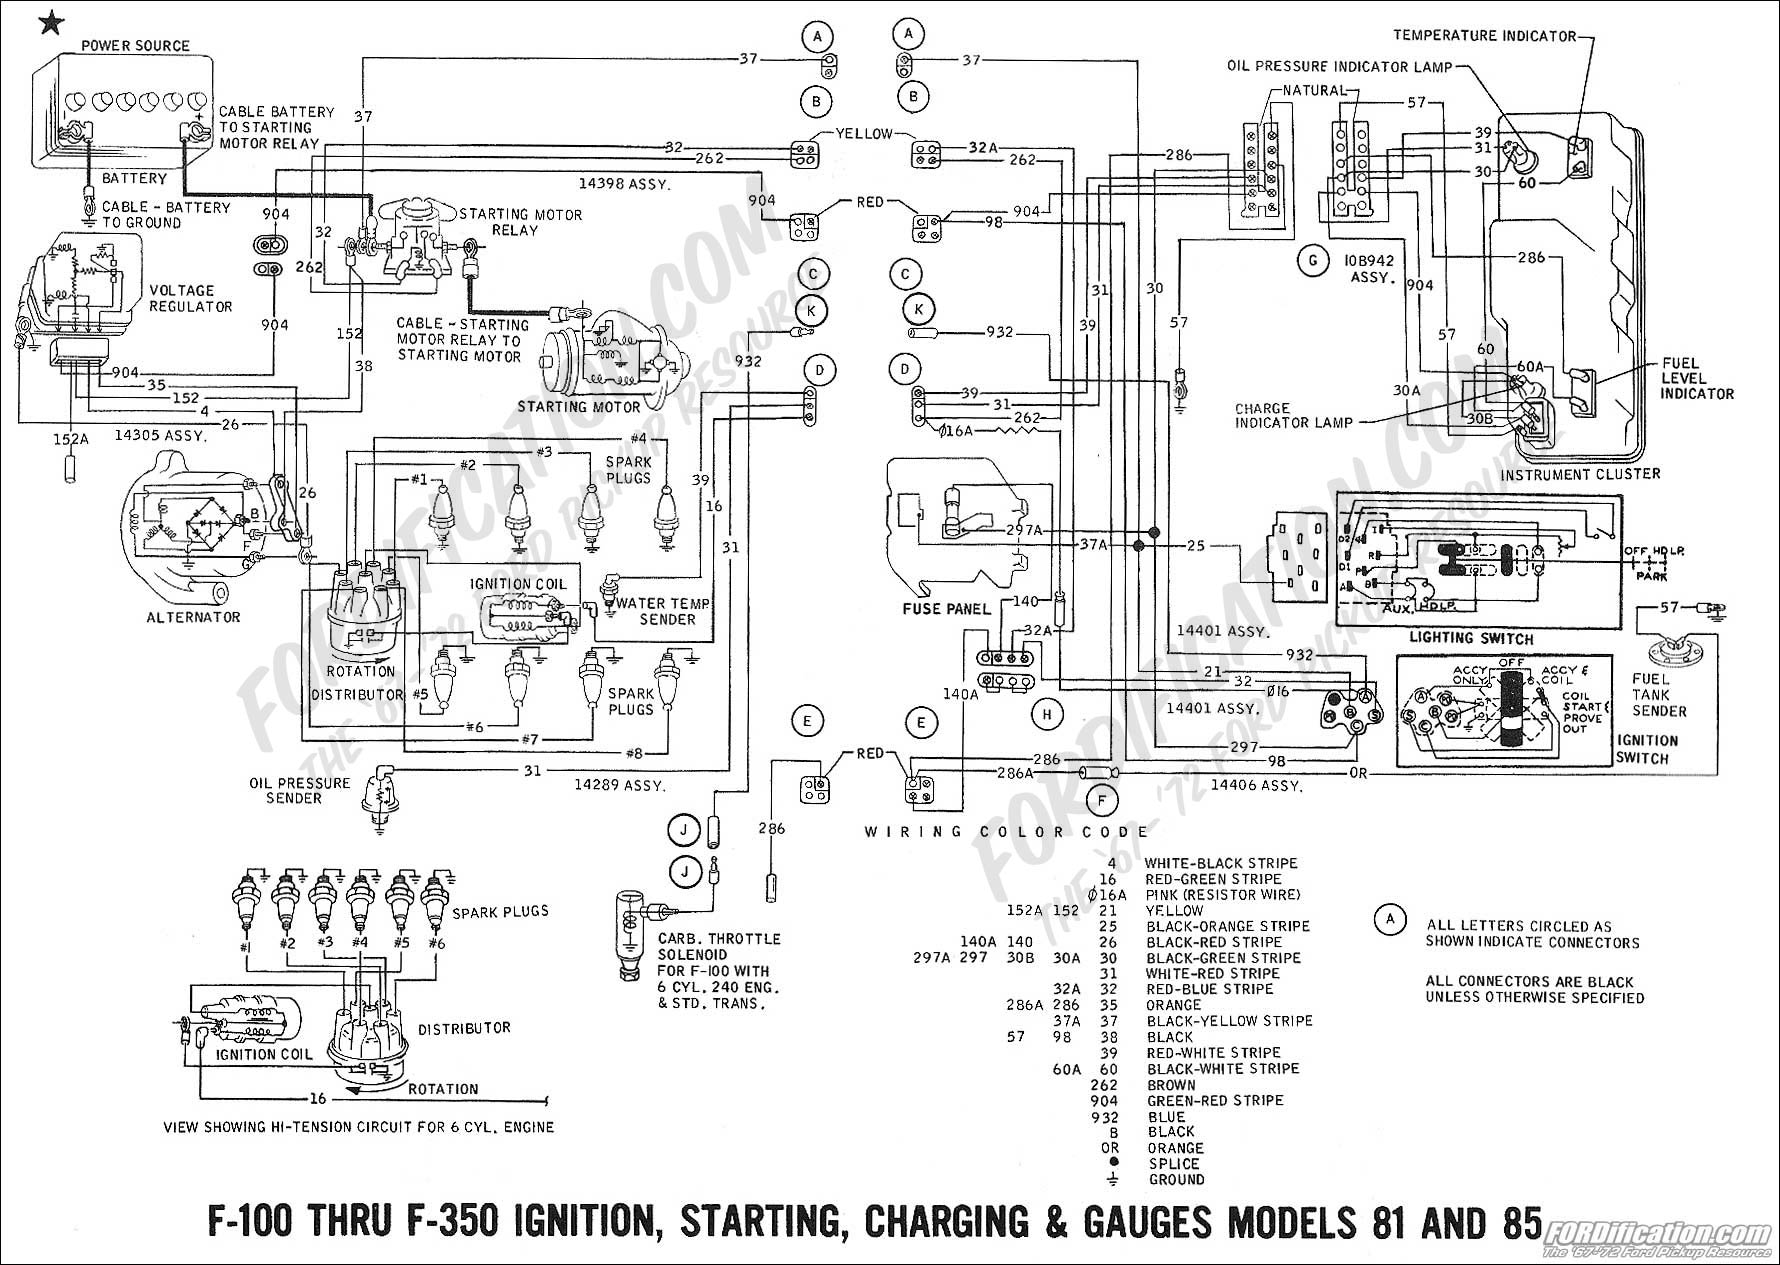 ford truck technical drawings and schematics section h 1968 ford pickup truck wiring diagram